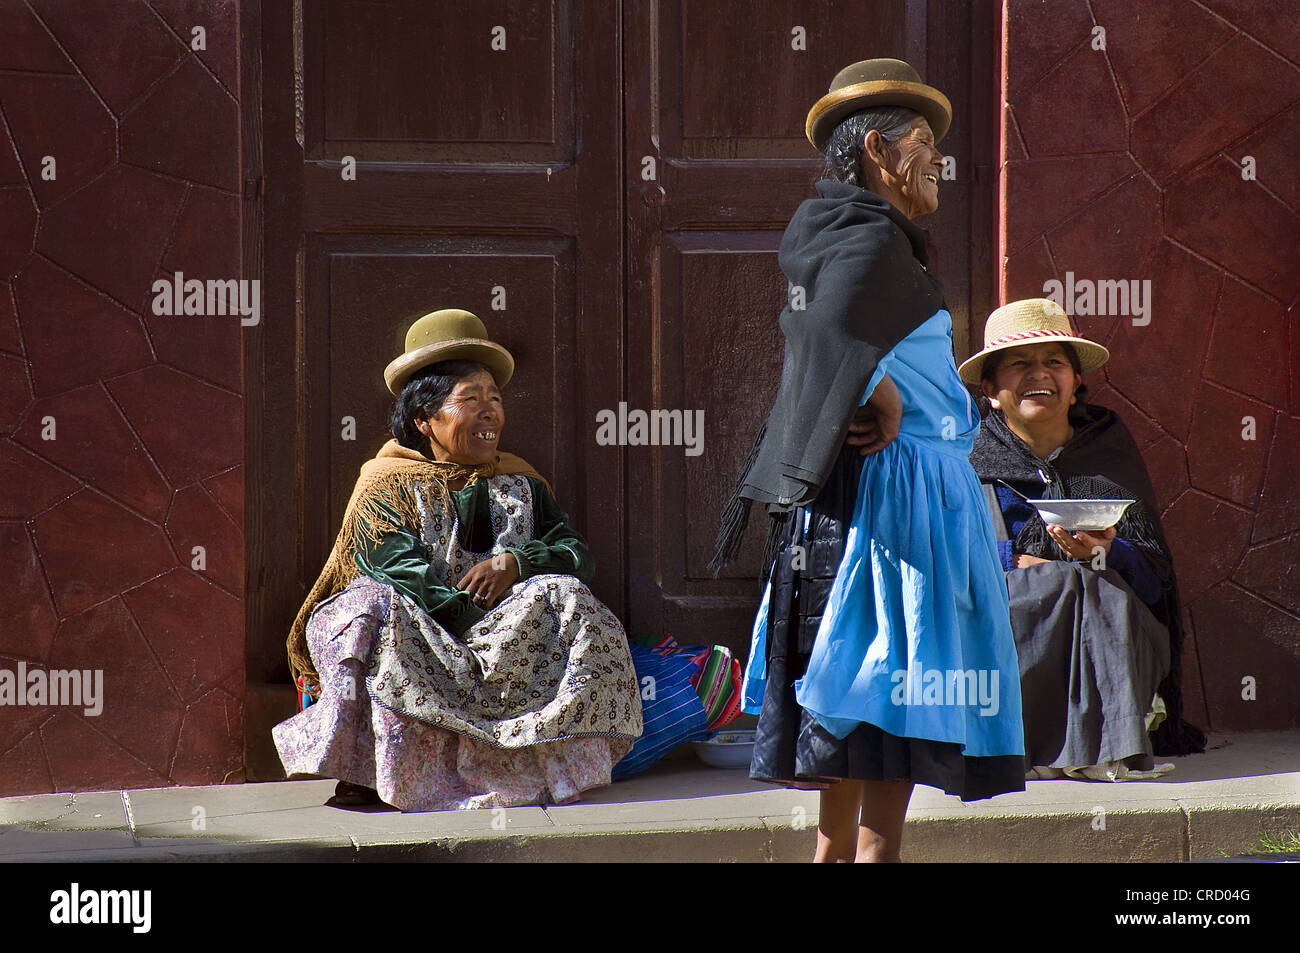 Street scene with three women of the indigenous peoples, La Paz, Bolivia, South America - Stock Image